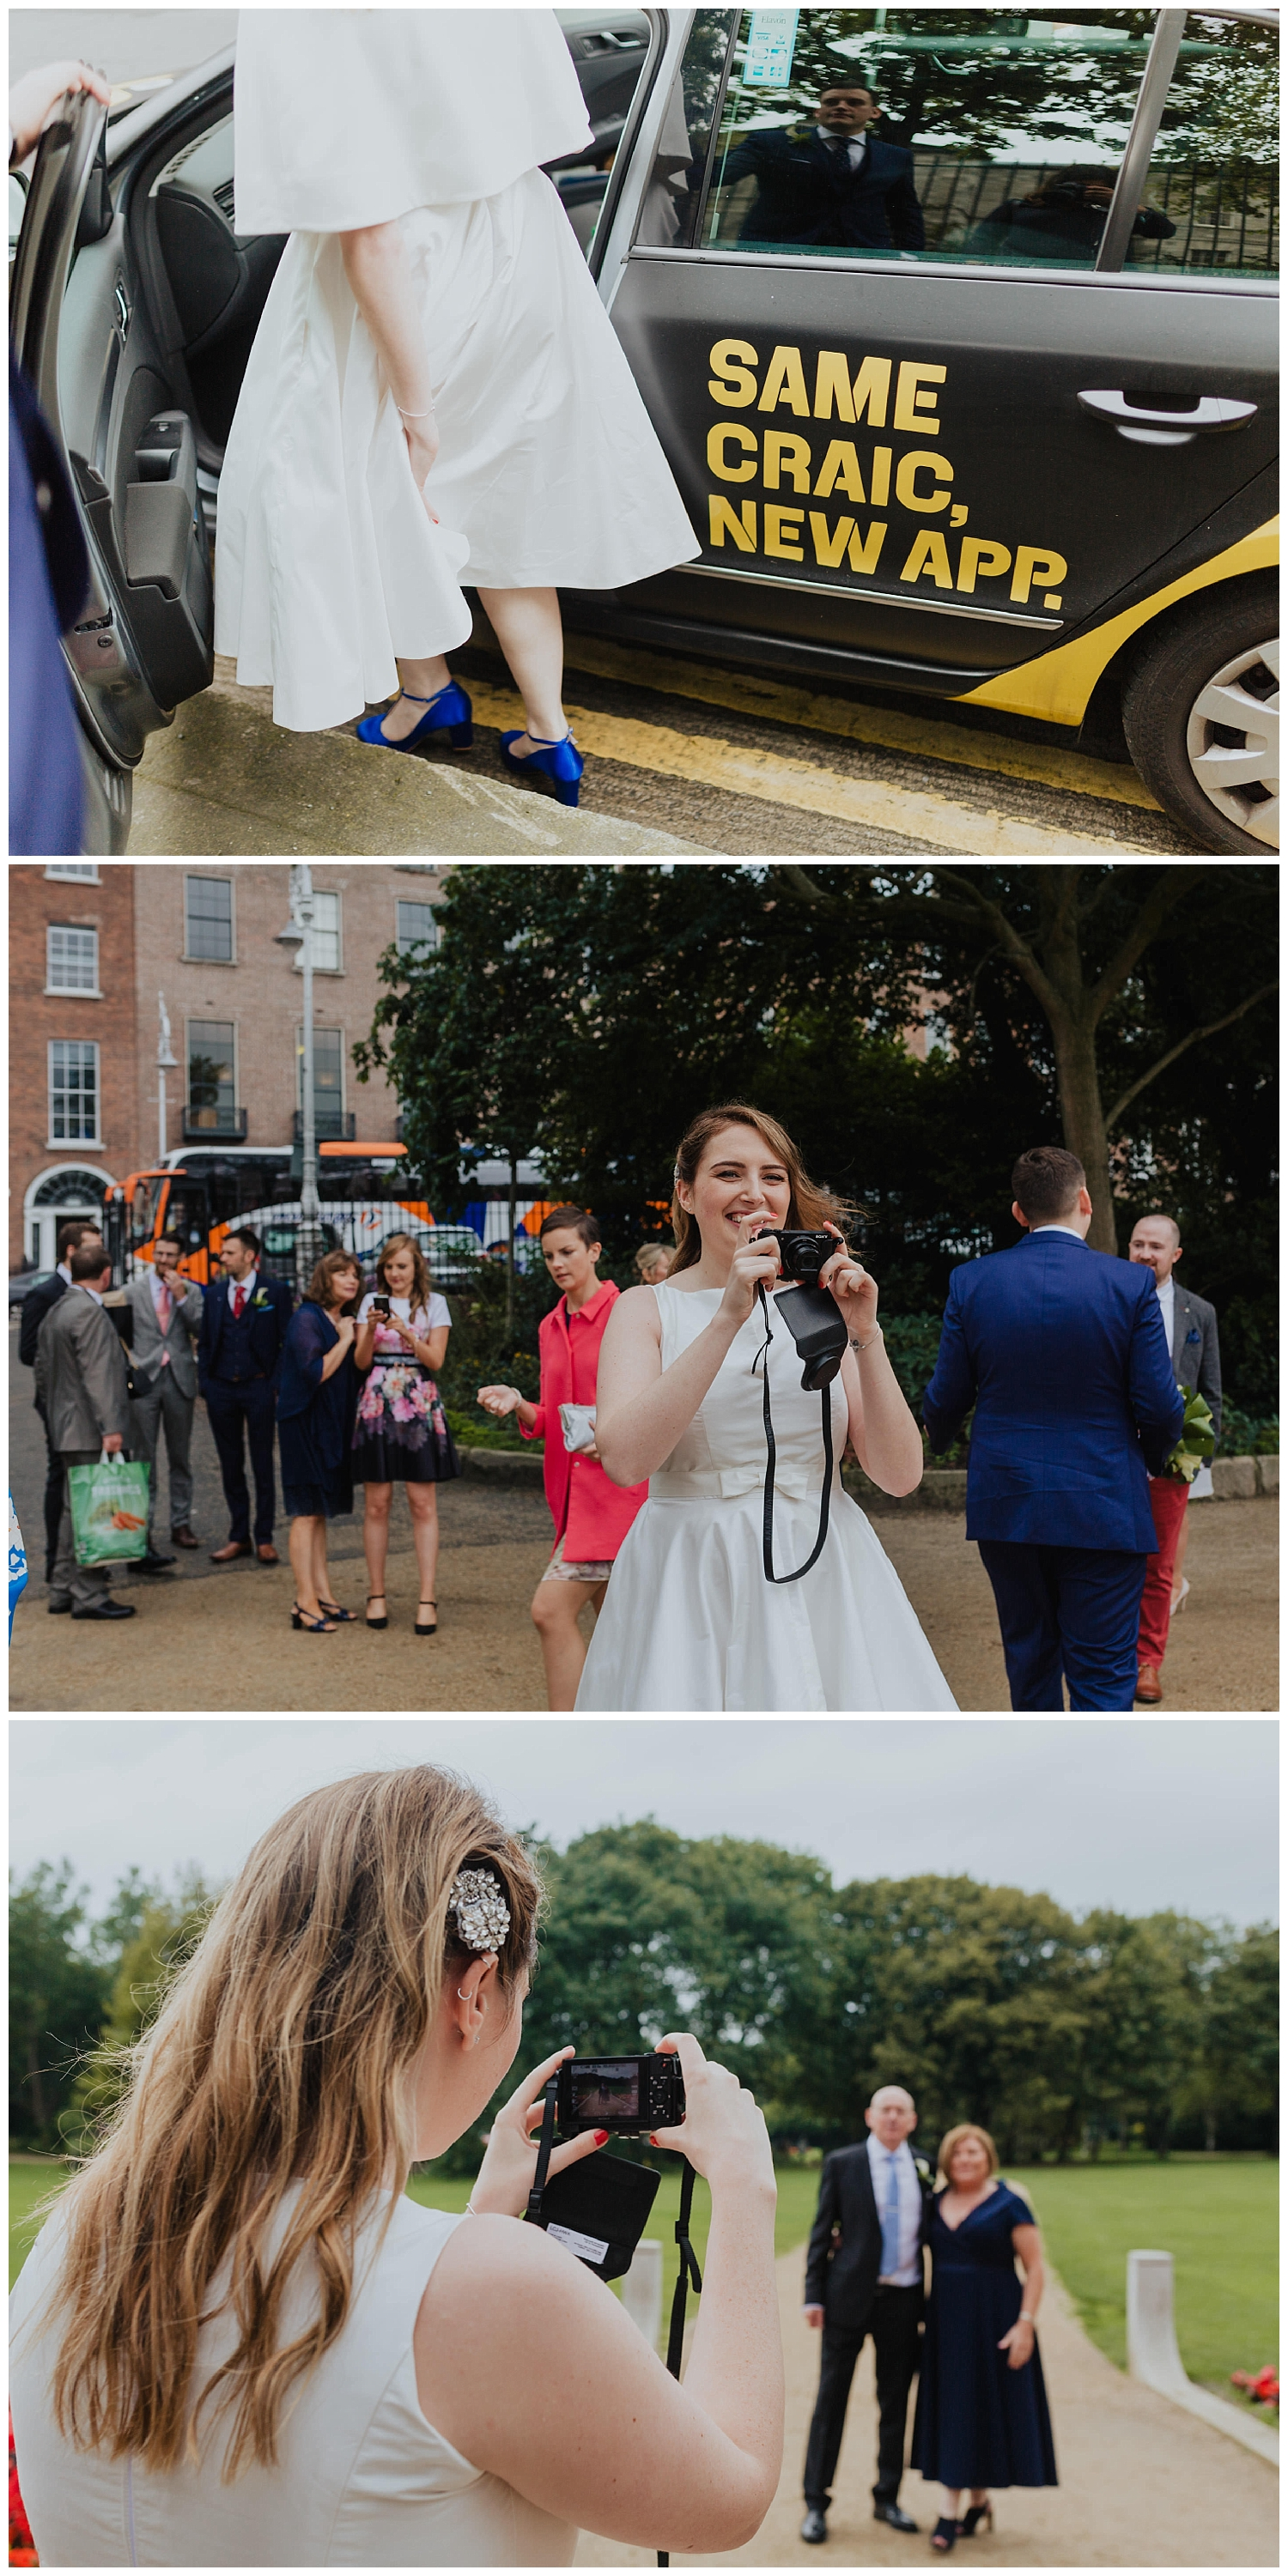 e&a_dublin_city_wedding_livia_figueiredo_415.jpg